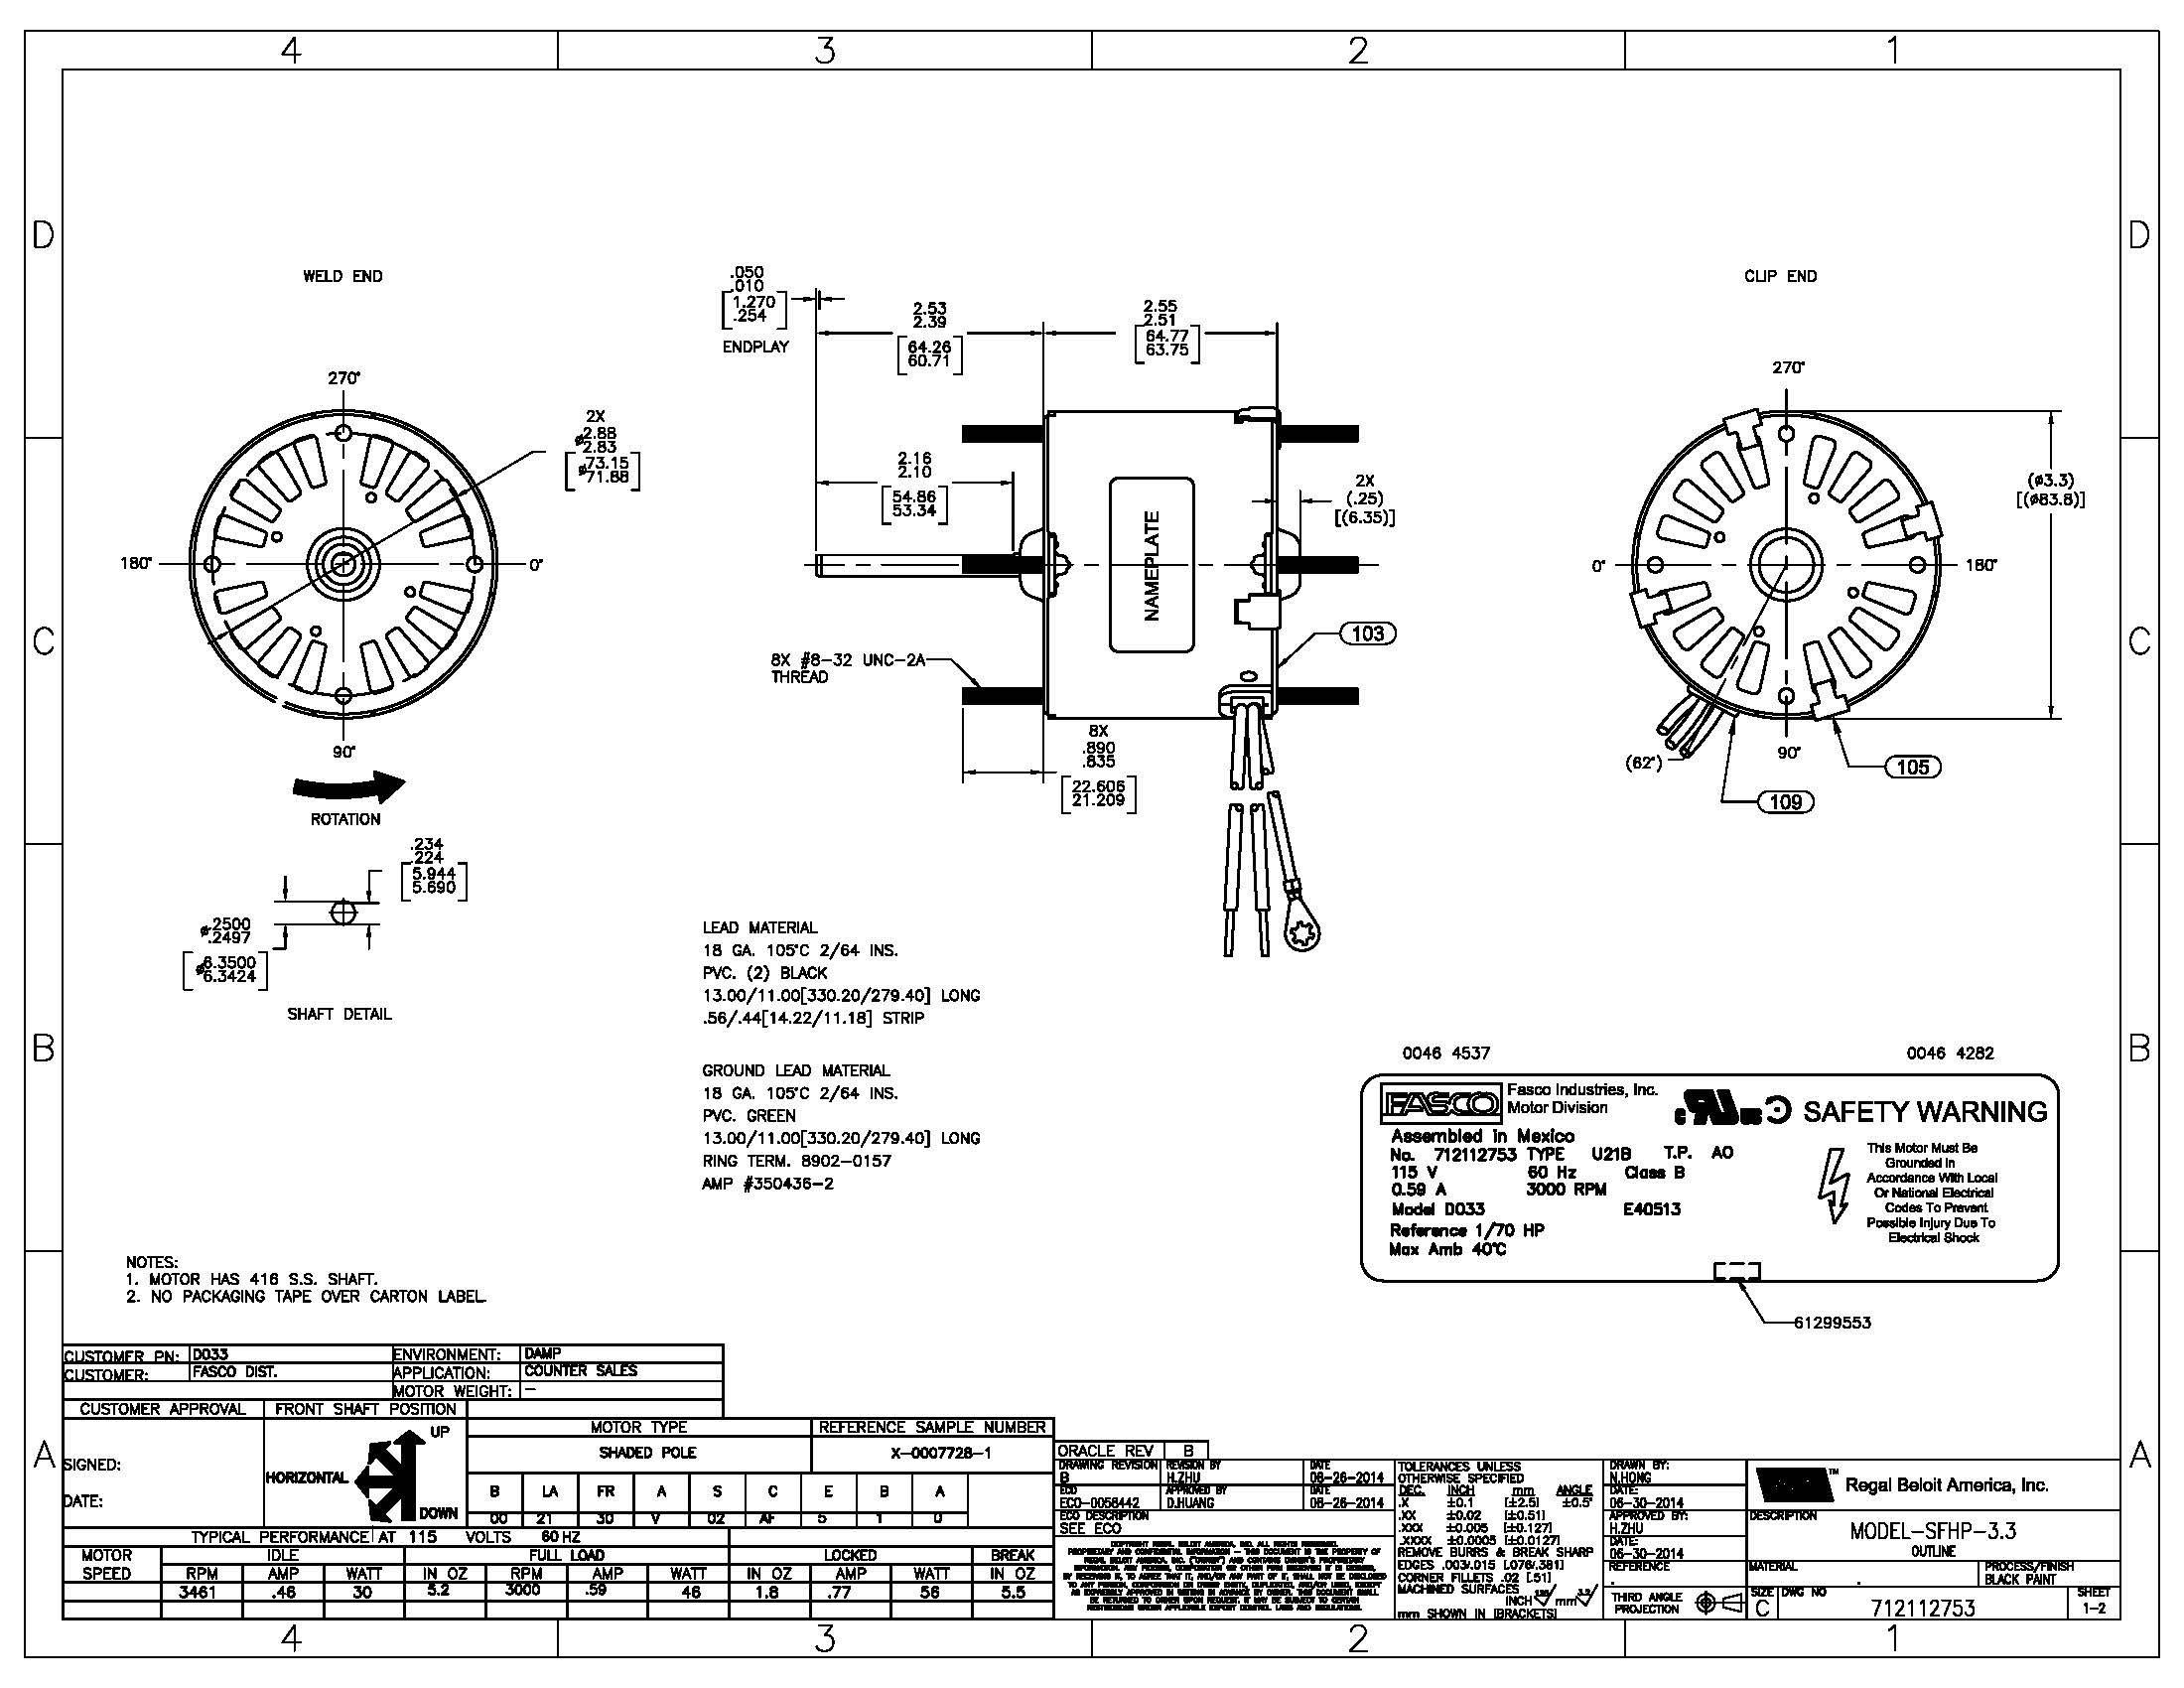 fasco fan motor wiring diagram Download-Wiring Diagram For Fasco Blower Motor Fresh Wiring Diagram Shaded Pole Motor New D033 Fasco 1 70 Hp Fan & Blower 16-r